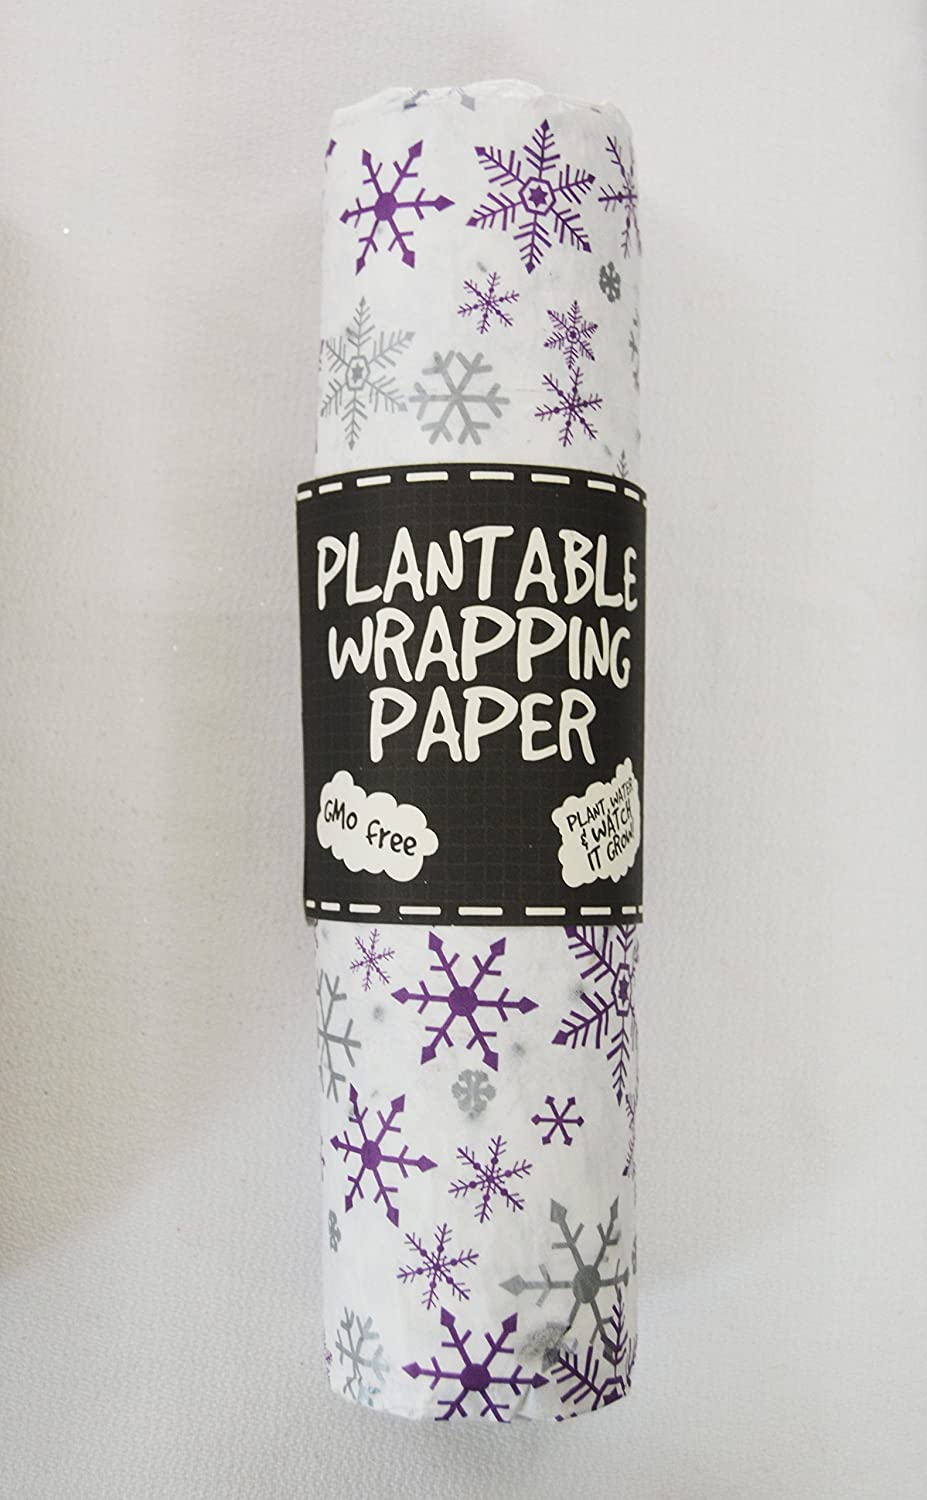 Amazon com: Plantable Wrapping PaperSet of 2 (Snowflake